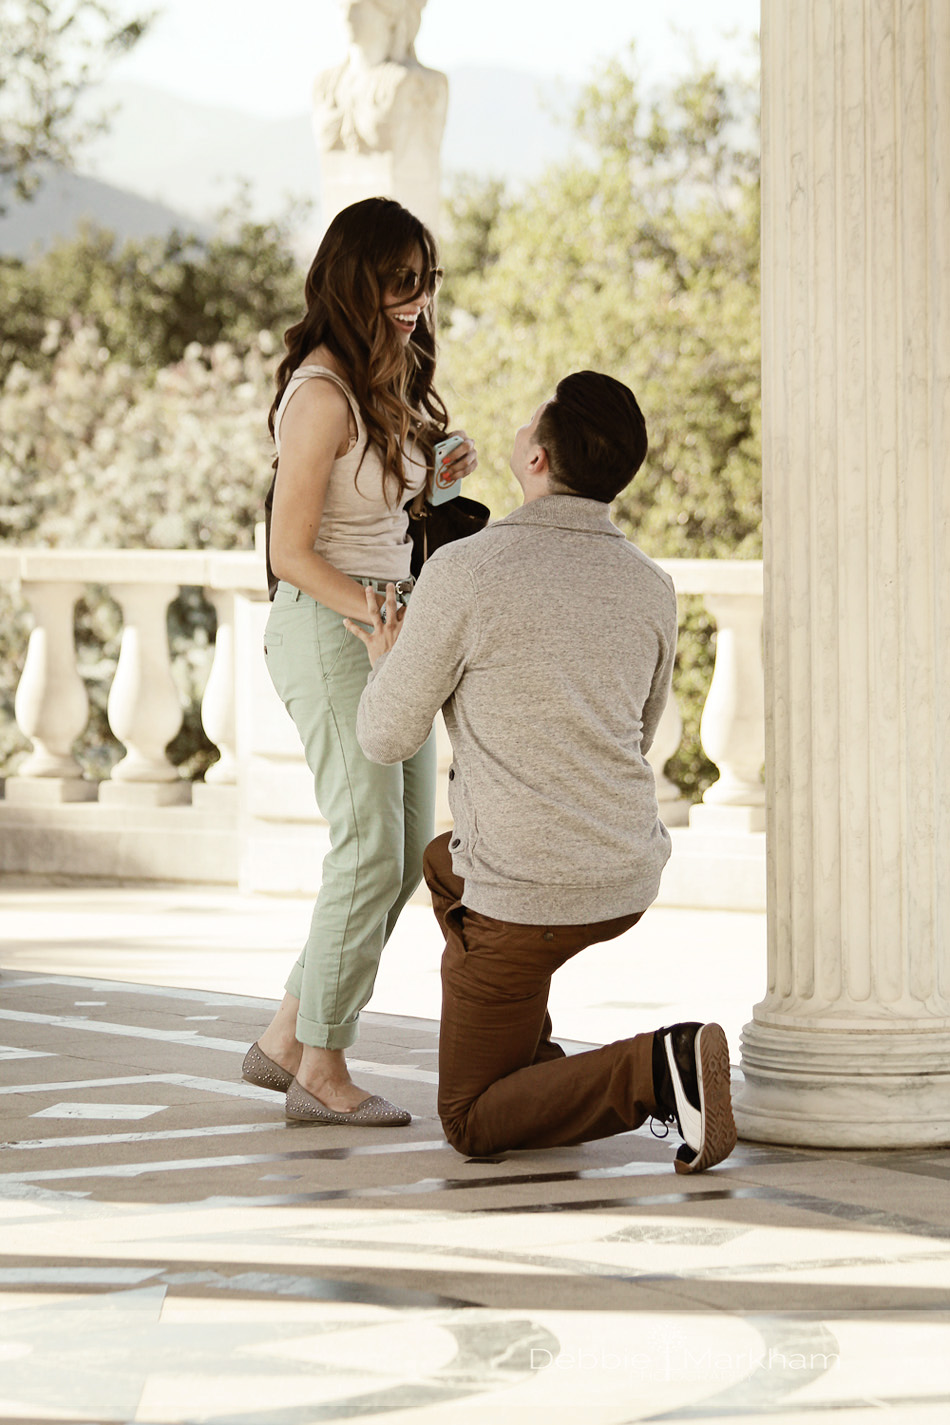 Debbie Markham Cambria Photographer-Victor proposes to Alma at Hearst Castle-Engagement SessionIMG_8922